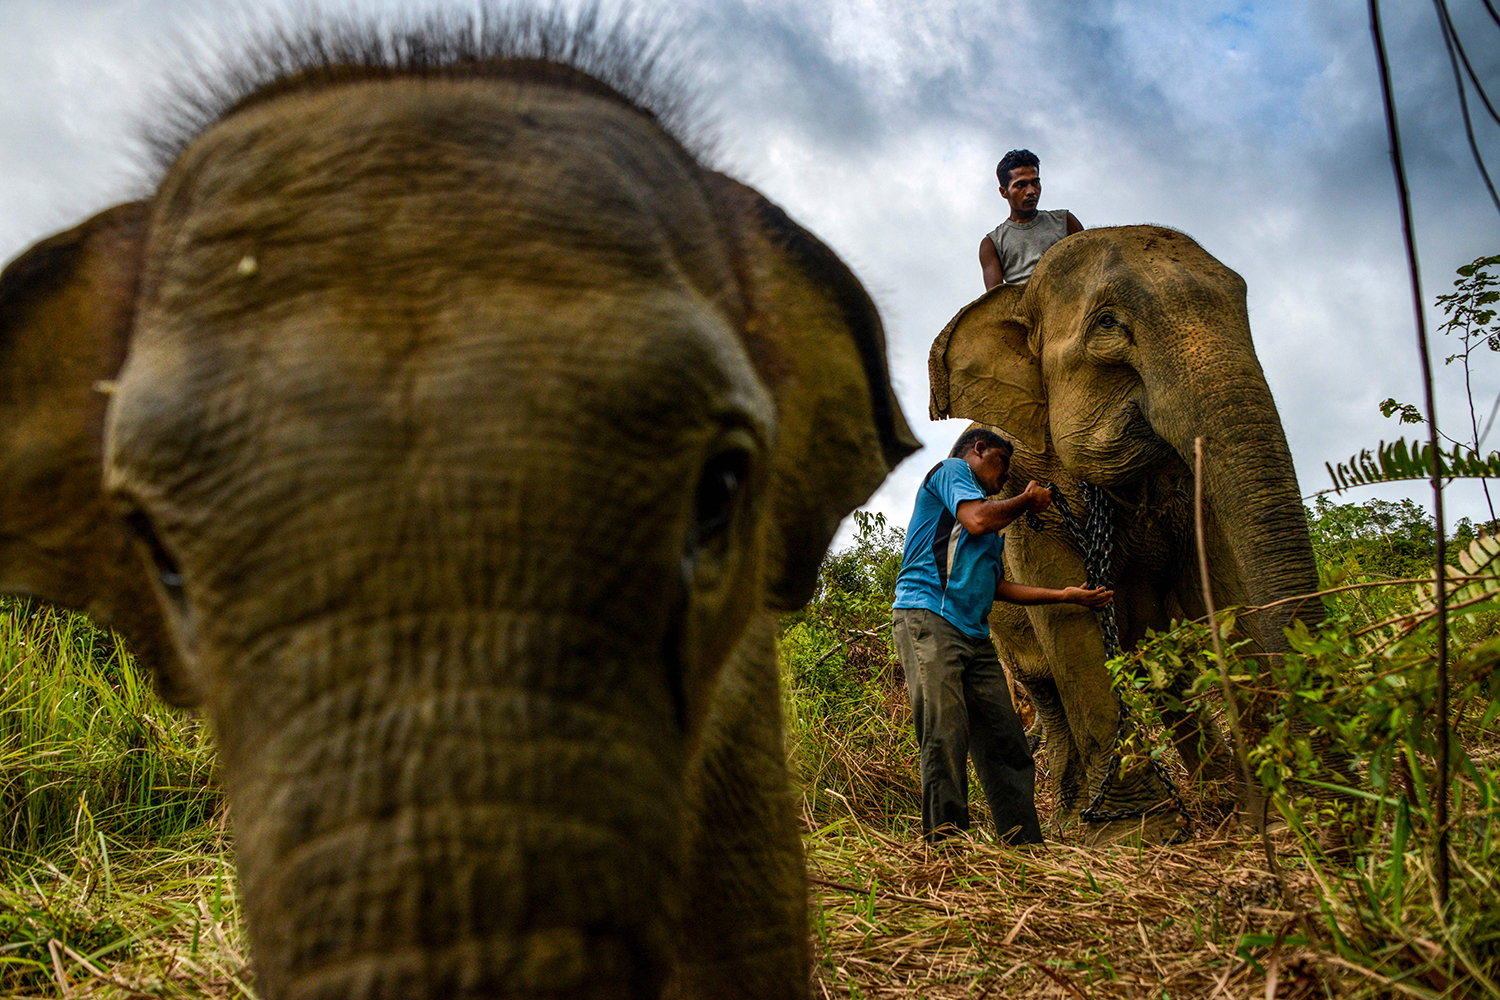 A mahout arranges the chain of a Sumatran elephant as a 6-month-old elephant walks past at the Alue Kuyun Conservation Response Unit in Meulaboh of Aceh province, Indonesia, on Feb. 8. CHAIDEER MAHYUDDIN/AFP via Getty Images